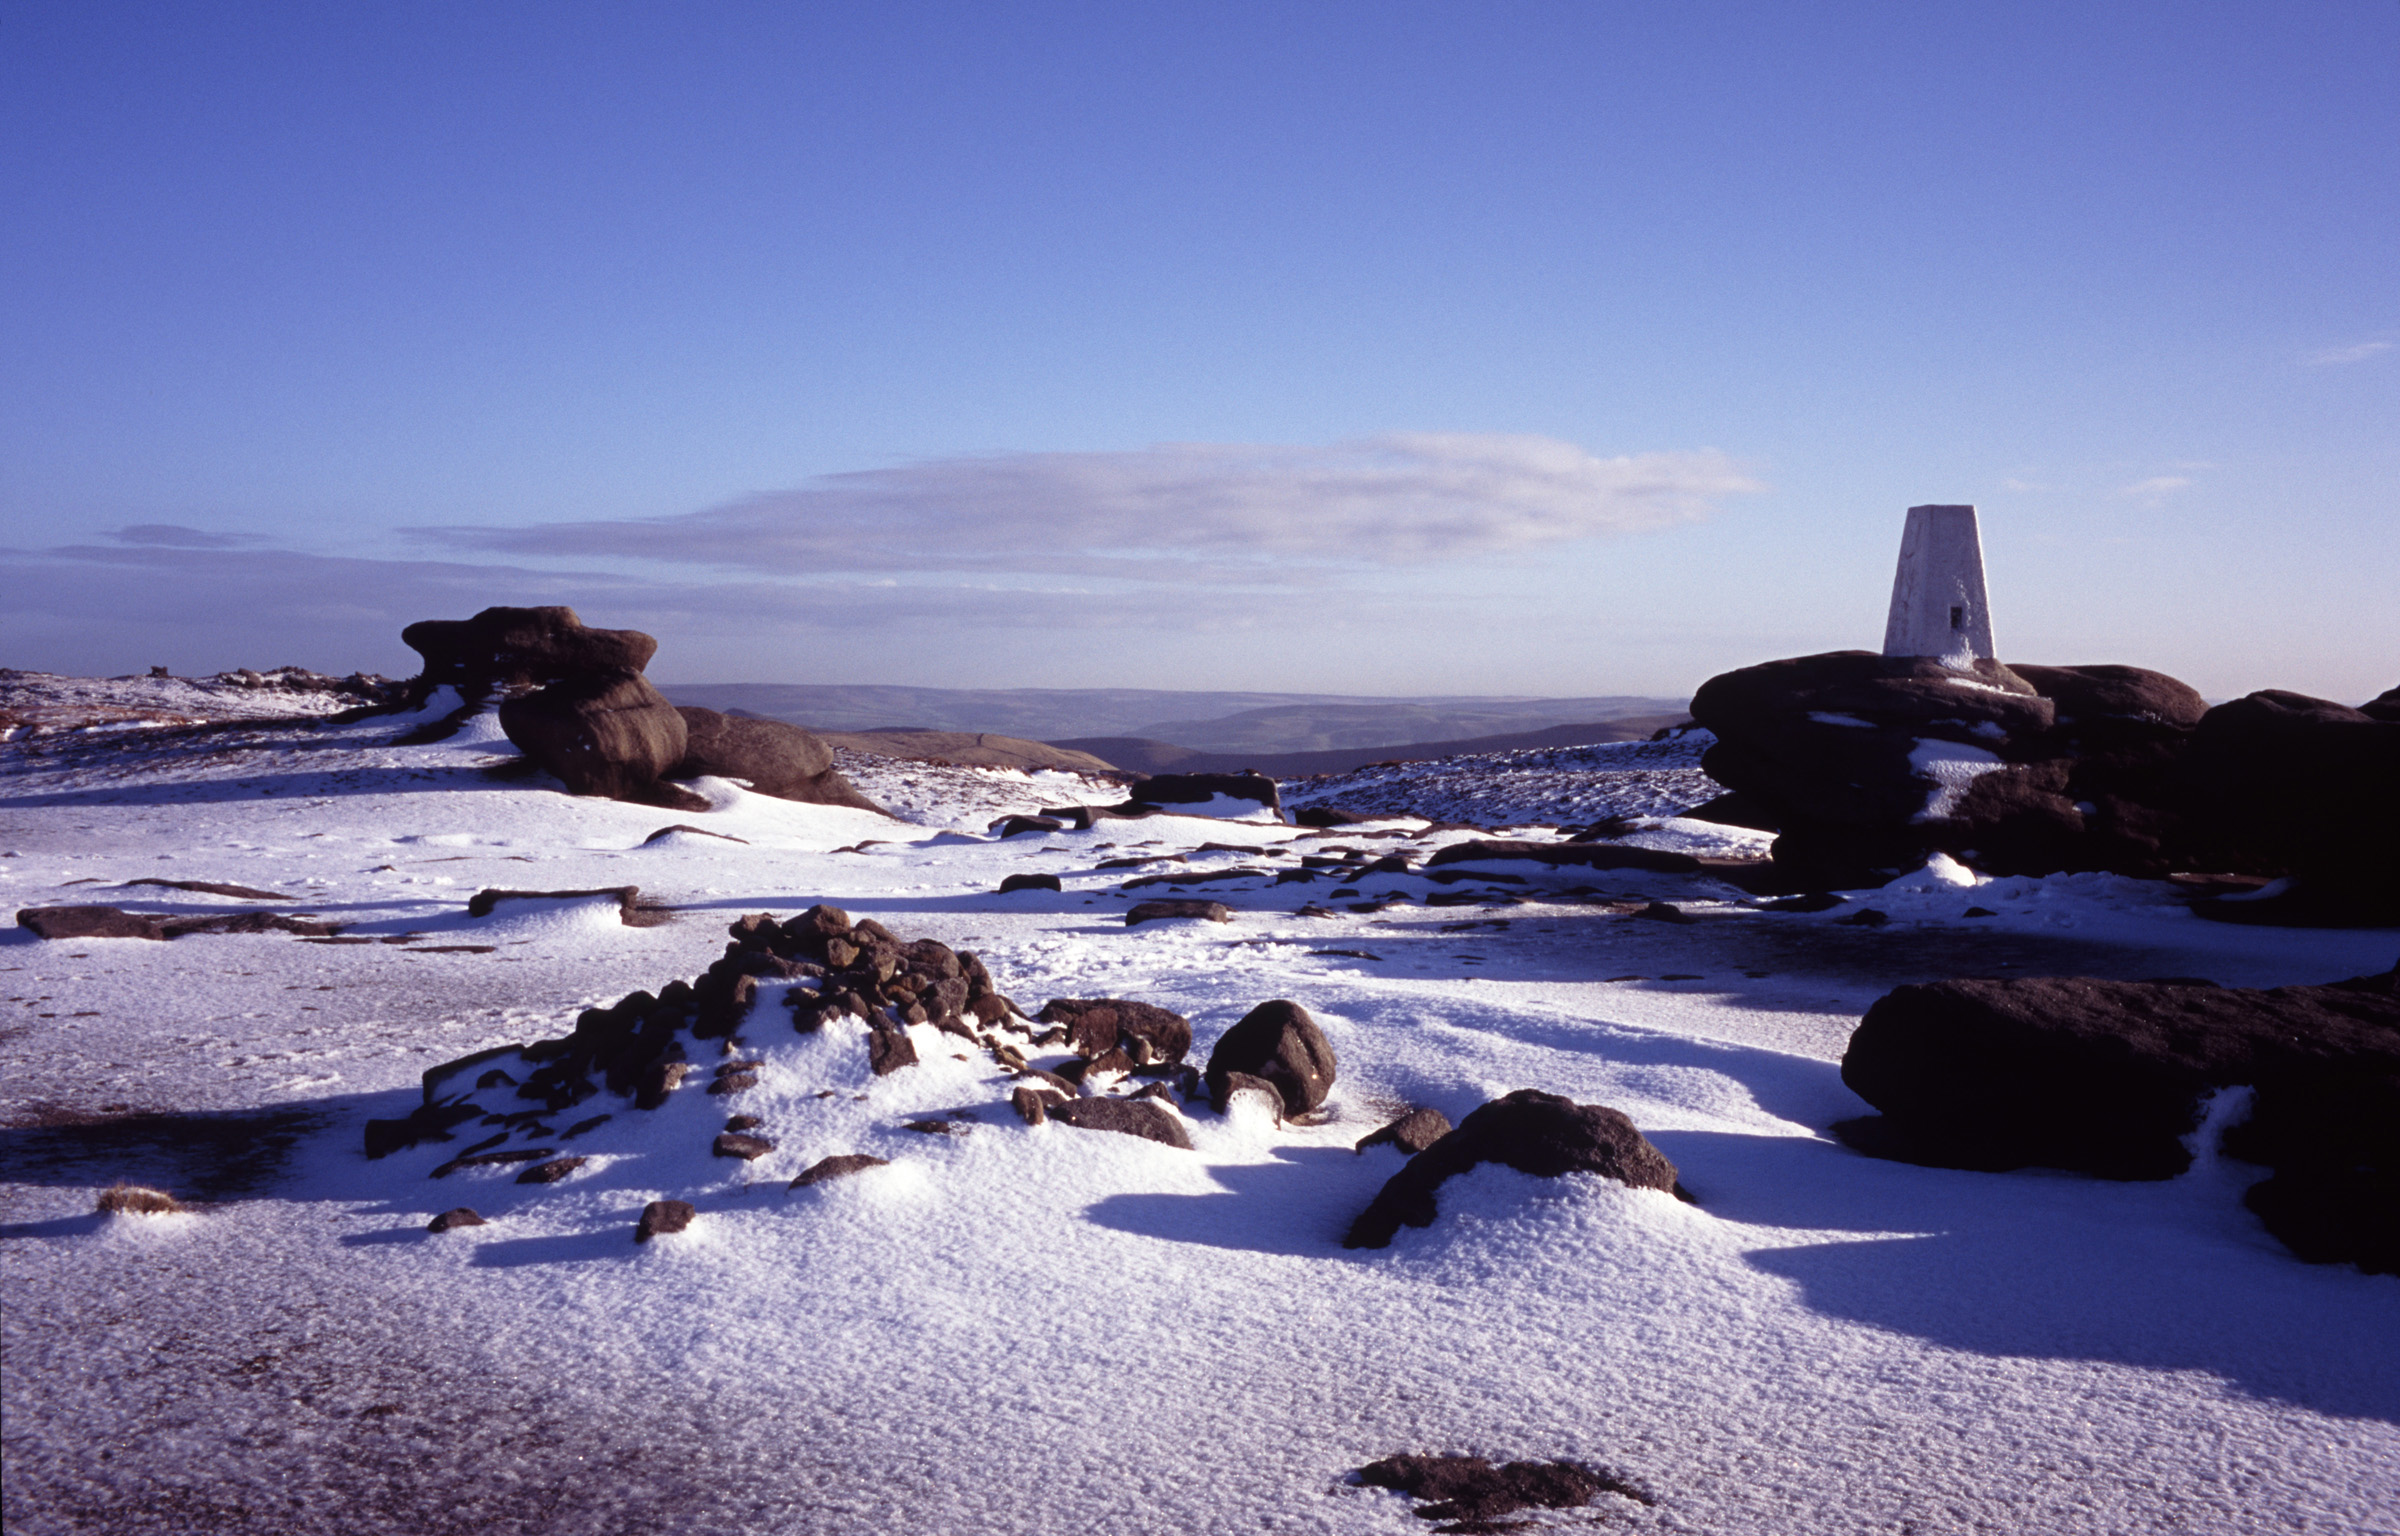 Picturesque view of the Kinder Scout moorlands in winter snow under a sunny crisp blue sky